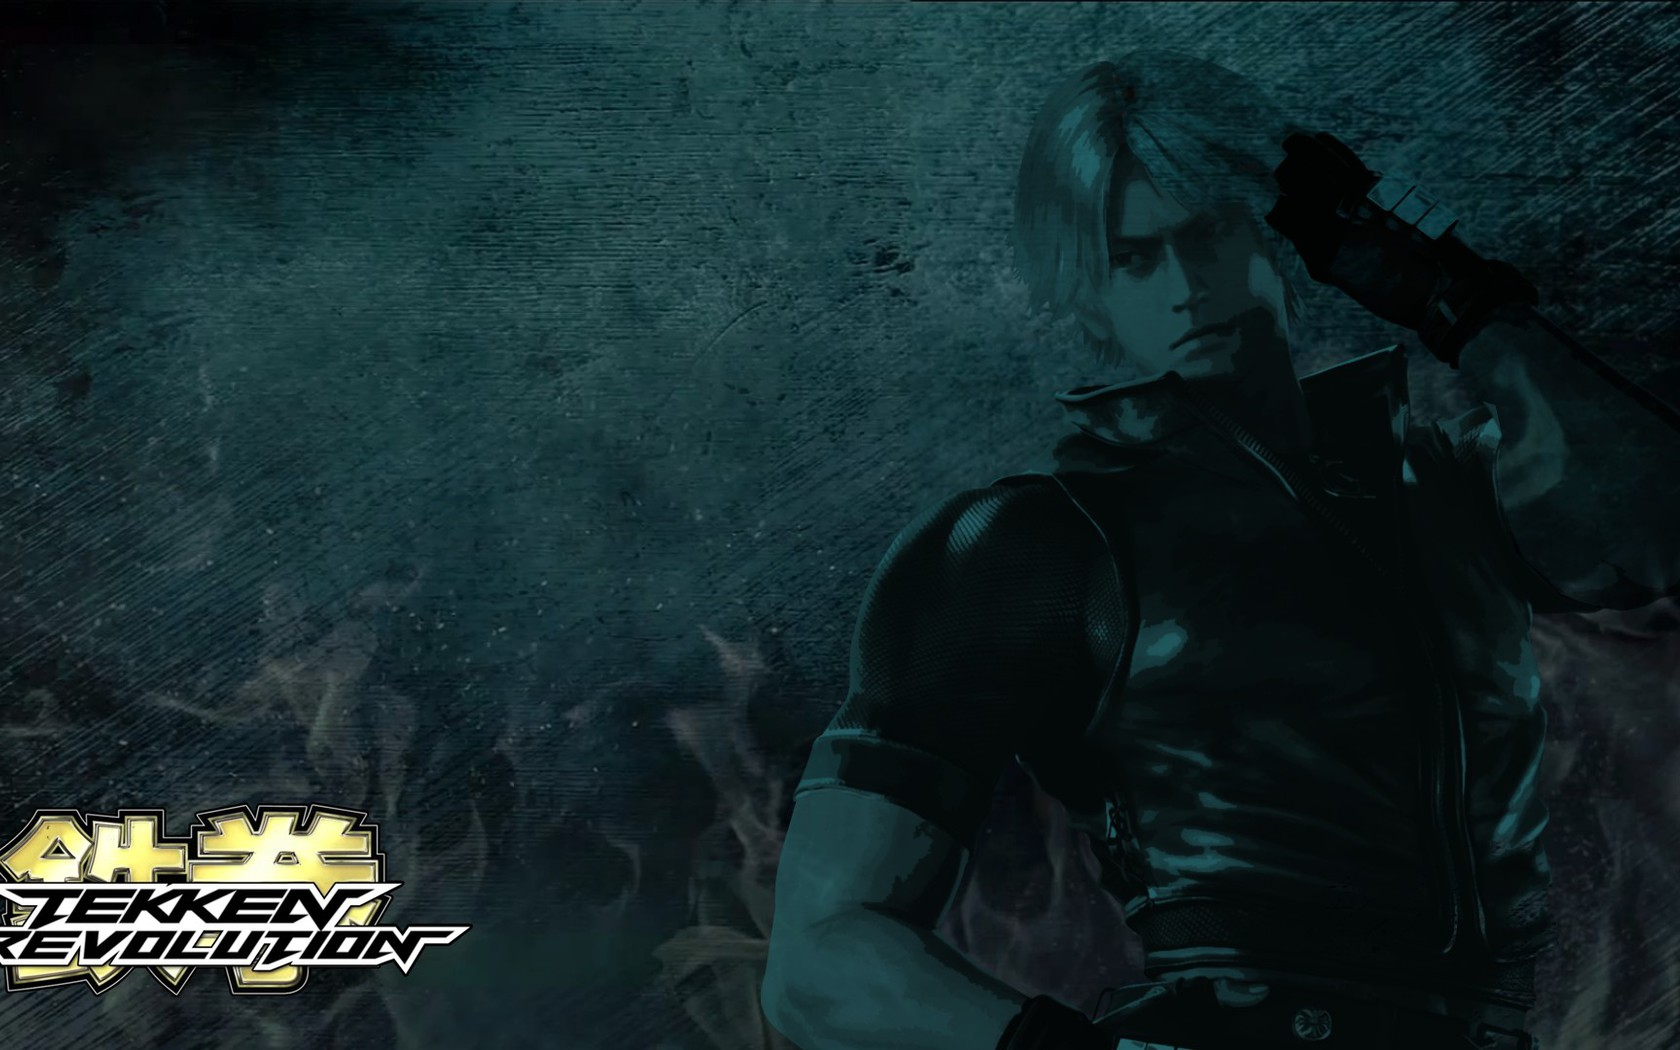 game characters wallpaper 1280x800 - photo #18